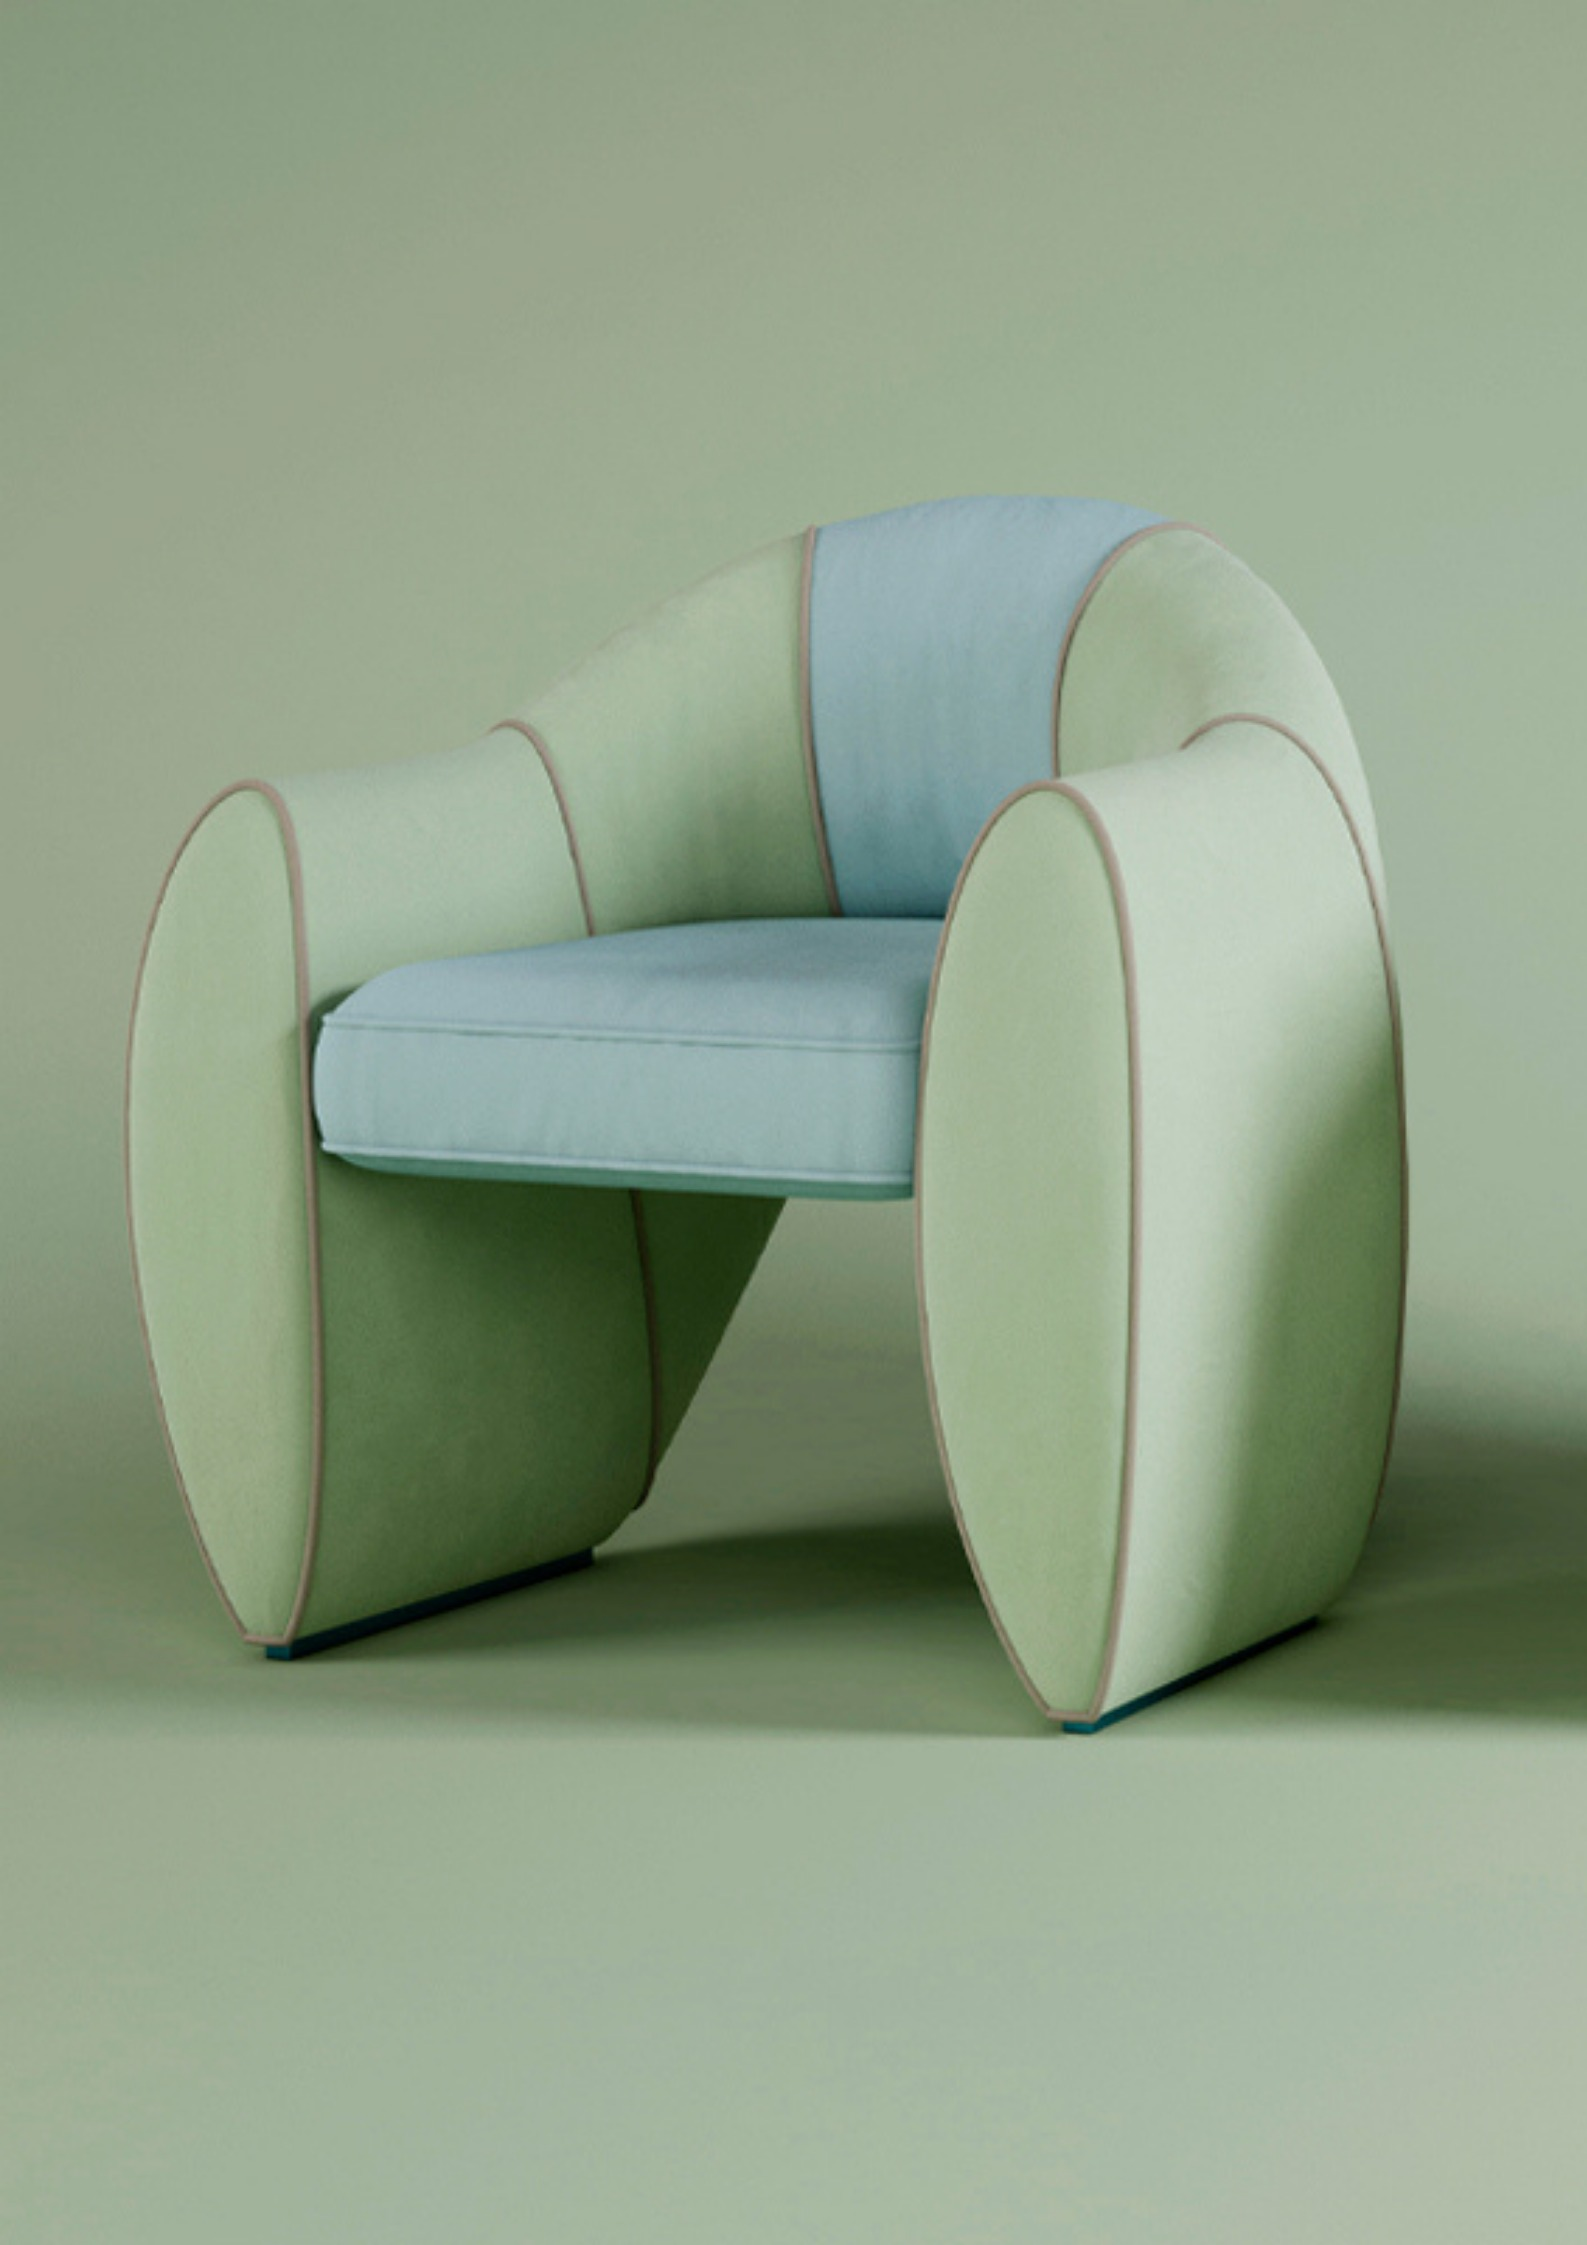 Art-inspired Furniture